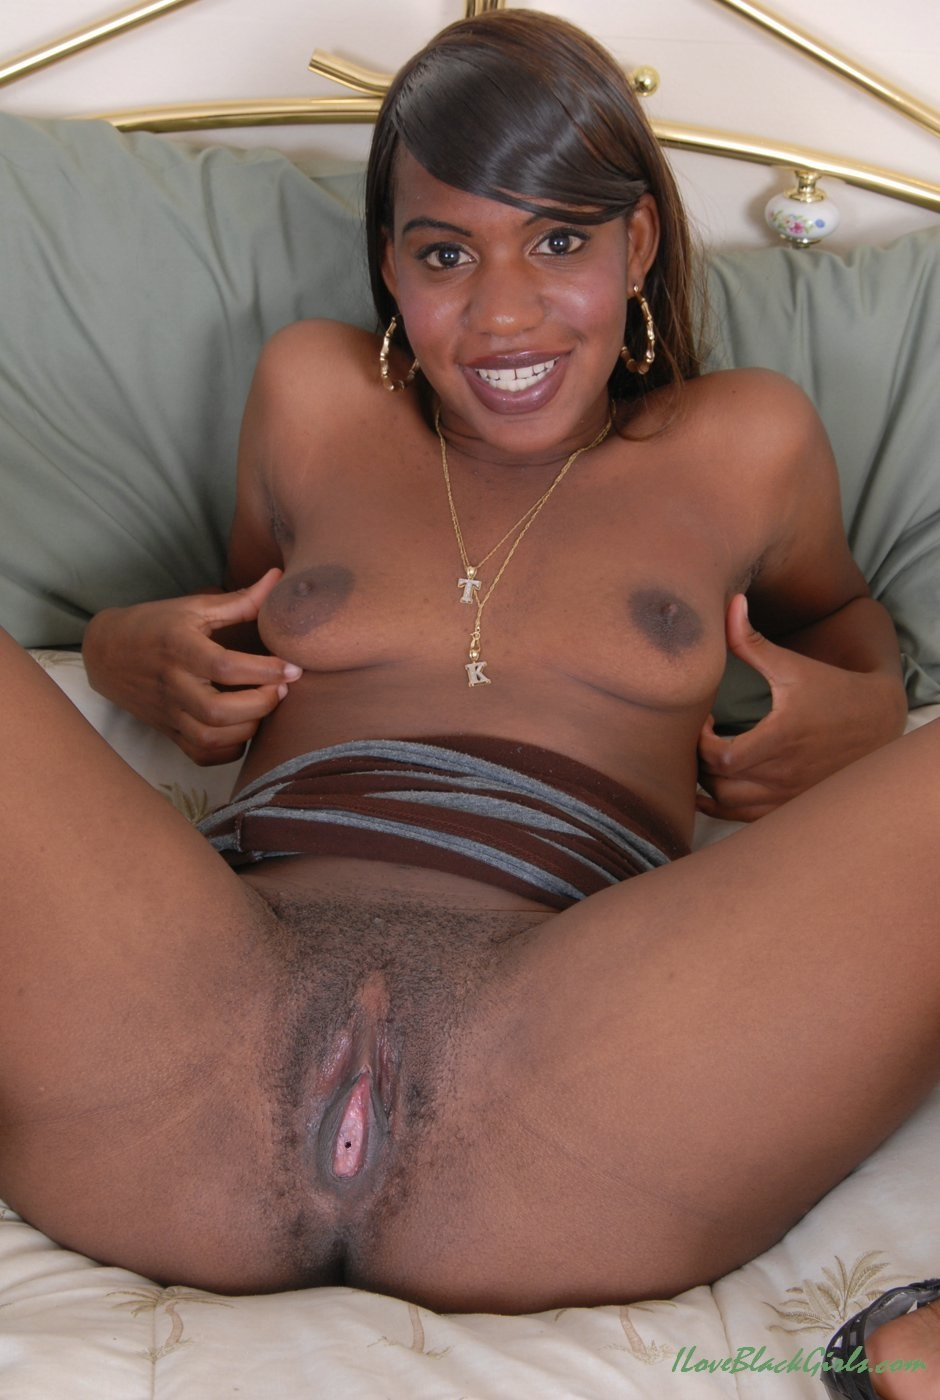 A sexy hairy black virgin pics picture 57